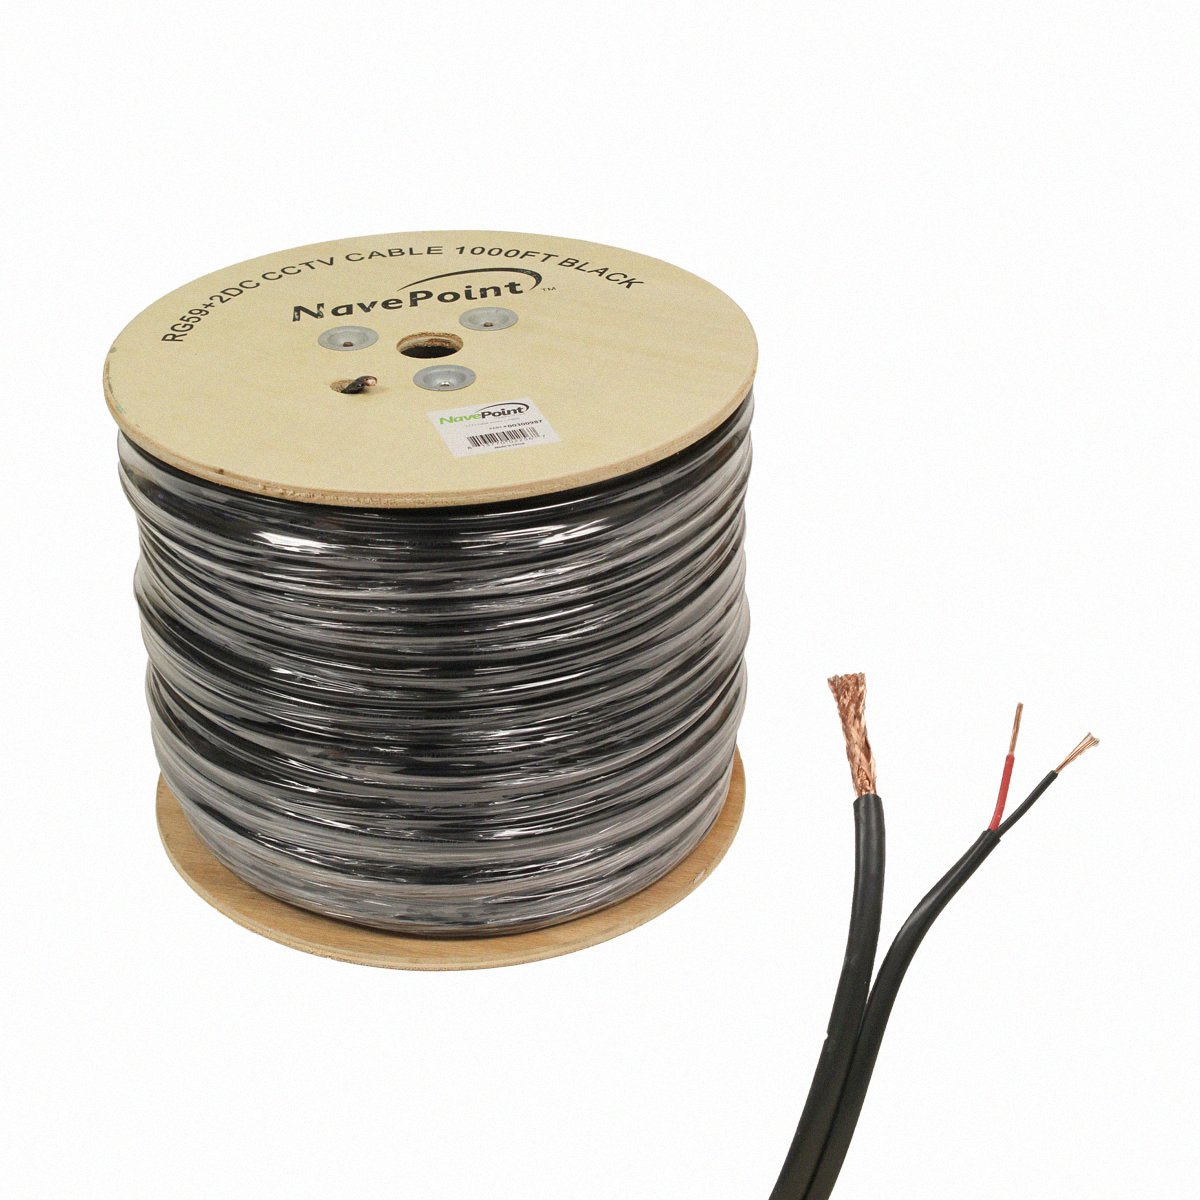 NavePoint 1000ft RG59 Siamese 20AWG 18/2 CCTV Bulk Wire Security Camera Video Cable Black